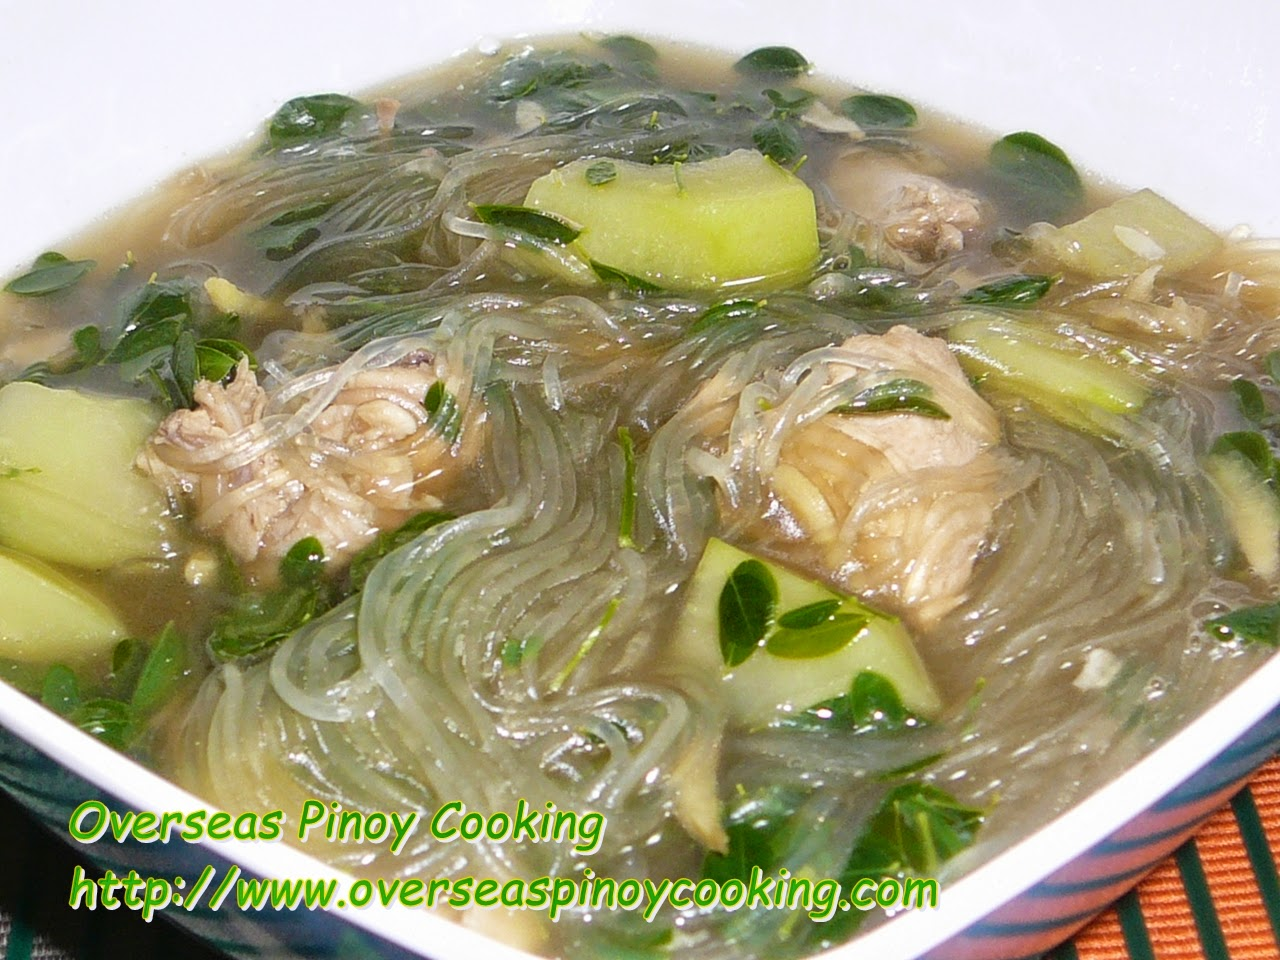 Tinolang Manok with Malungay and Sotanghon